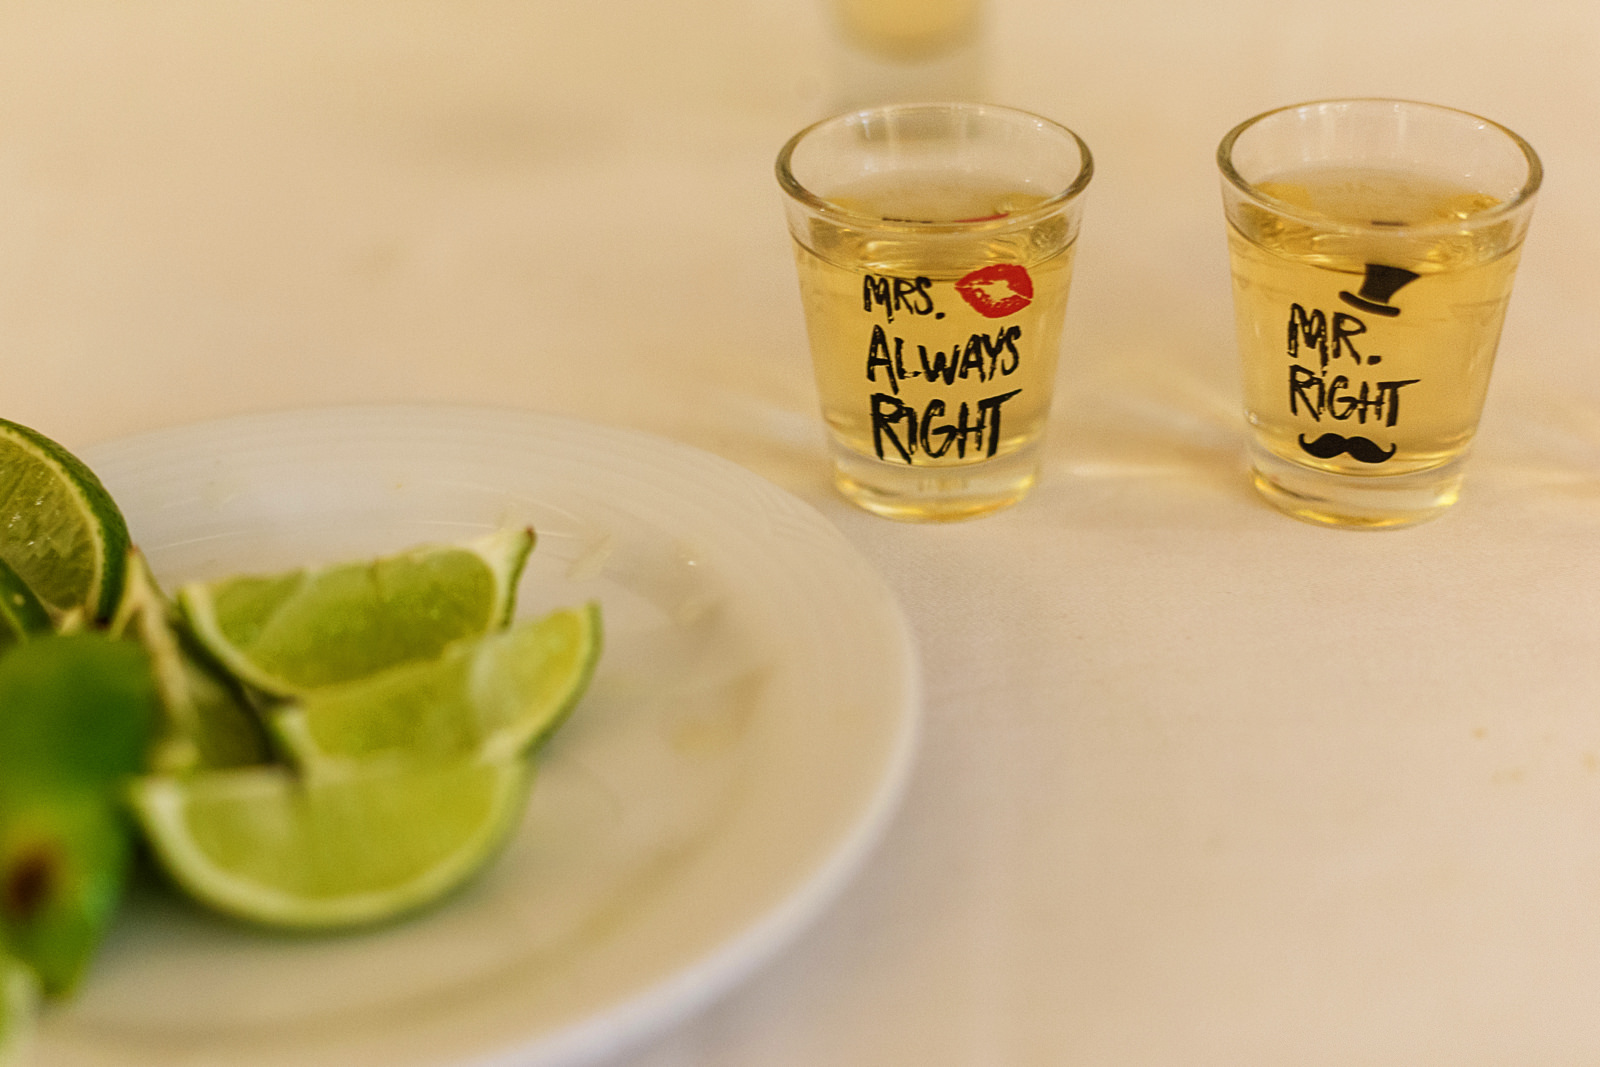 Tequila shots for the groom and bride